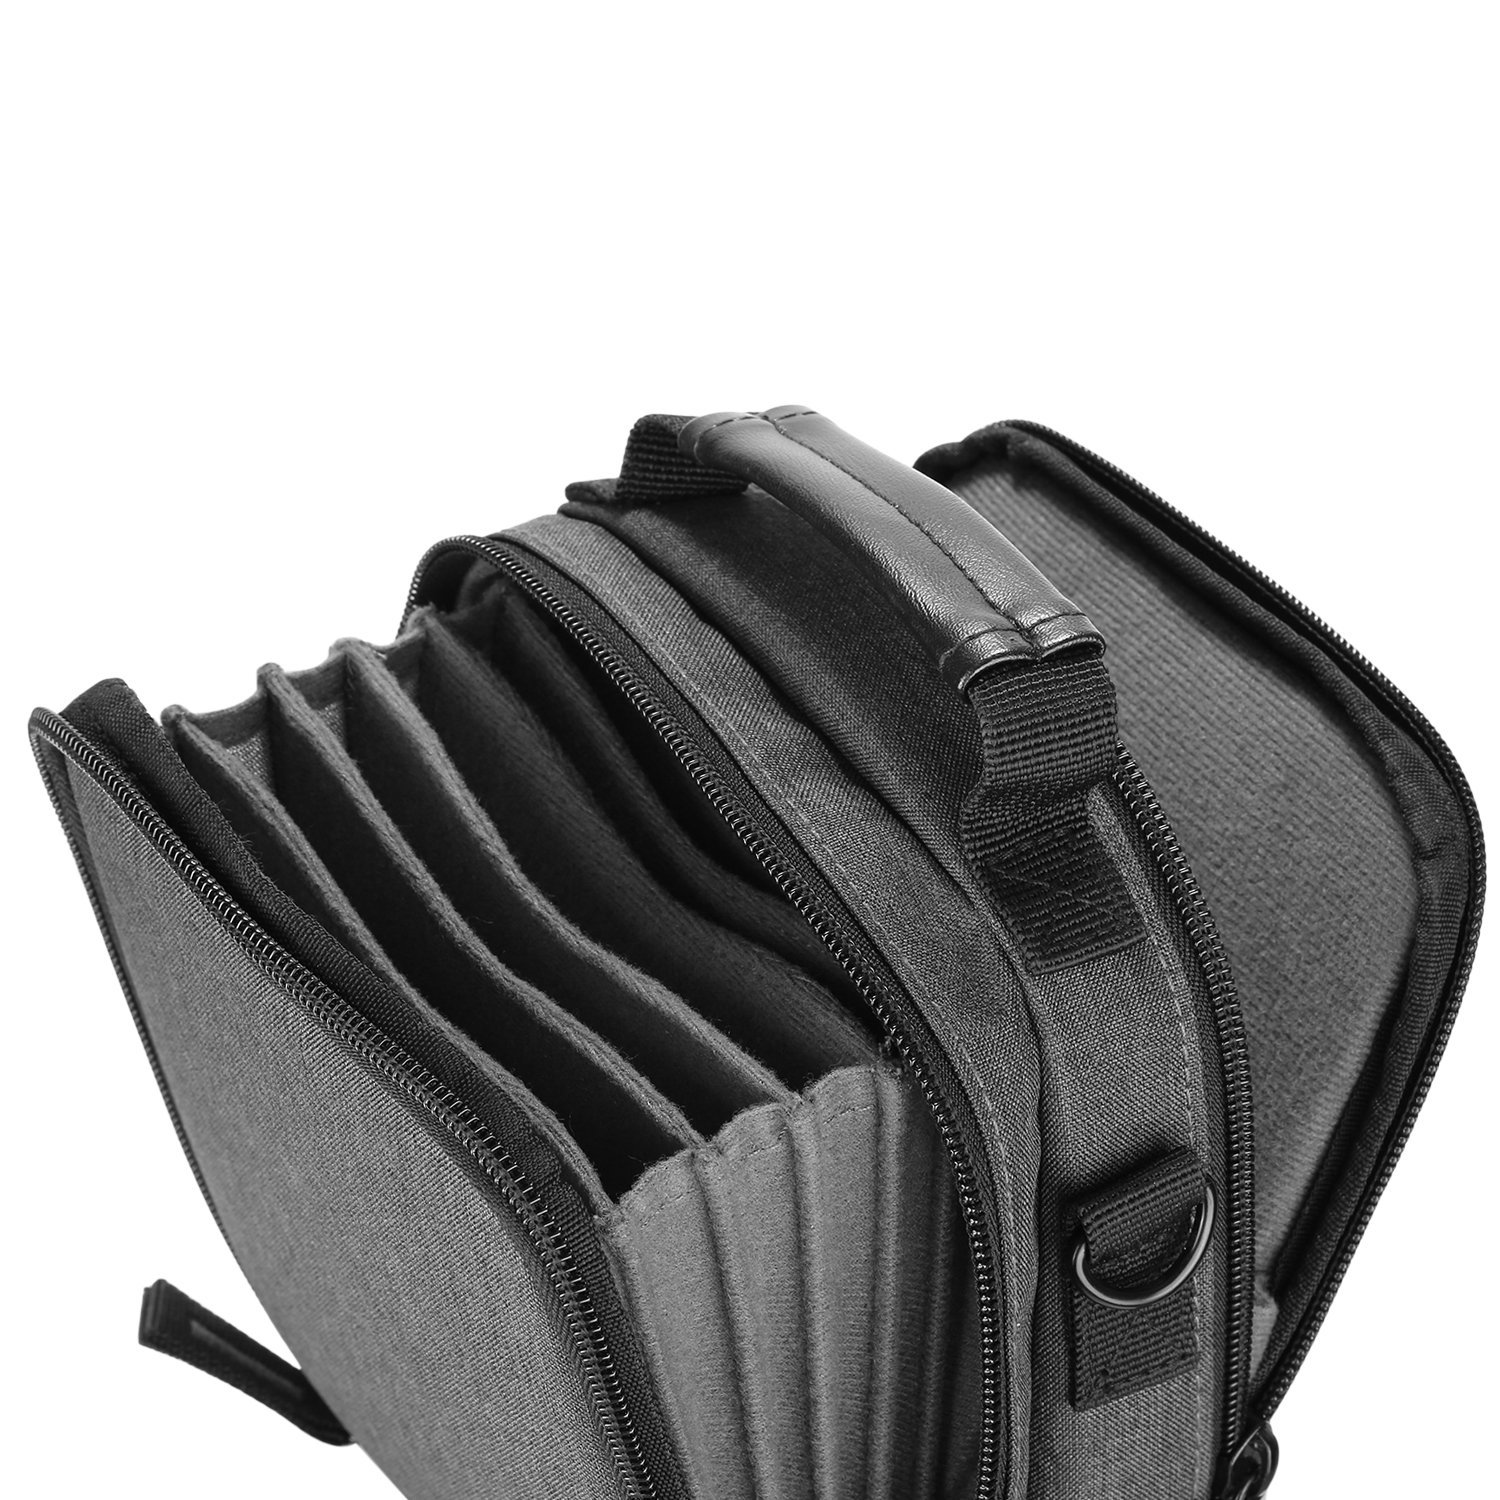 Neewer Camera Lens Filter Pouch Case with Shoulder Strap, Made of Solid Canvas for 6 Piece 100x100mm or 100x150mm Square or Rectangular Filters 10093600